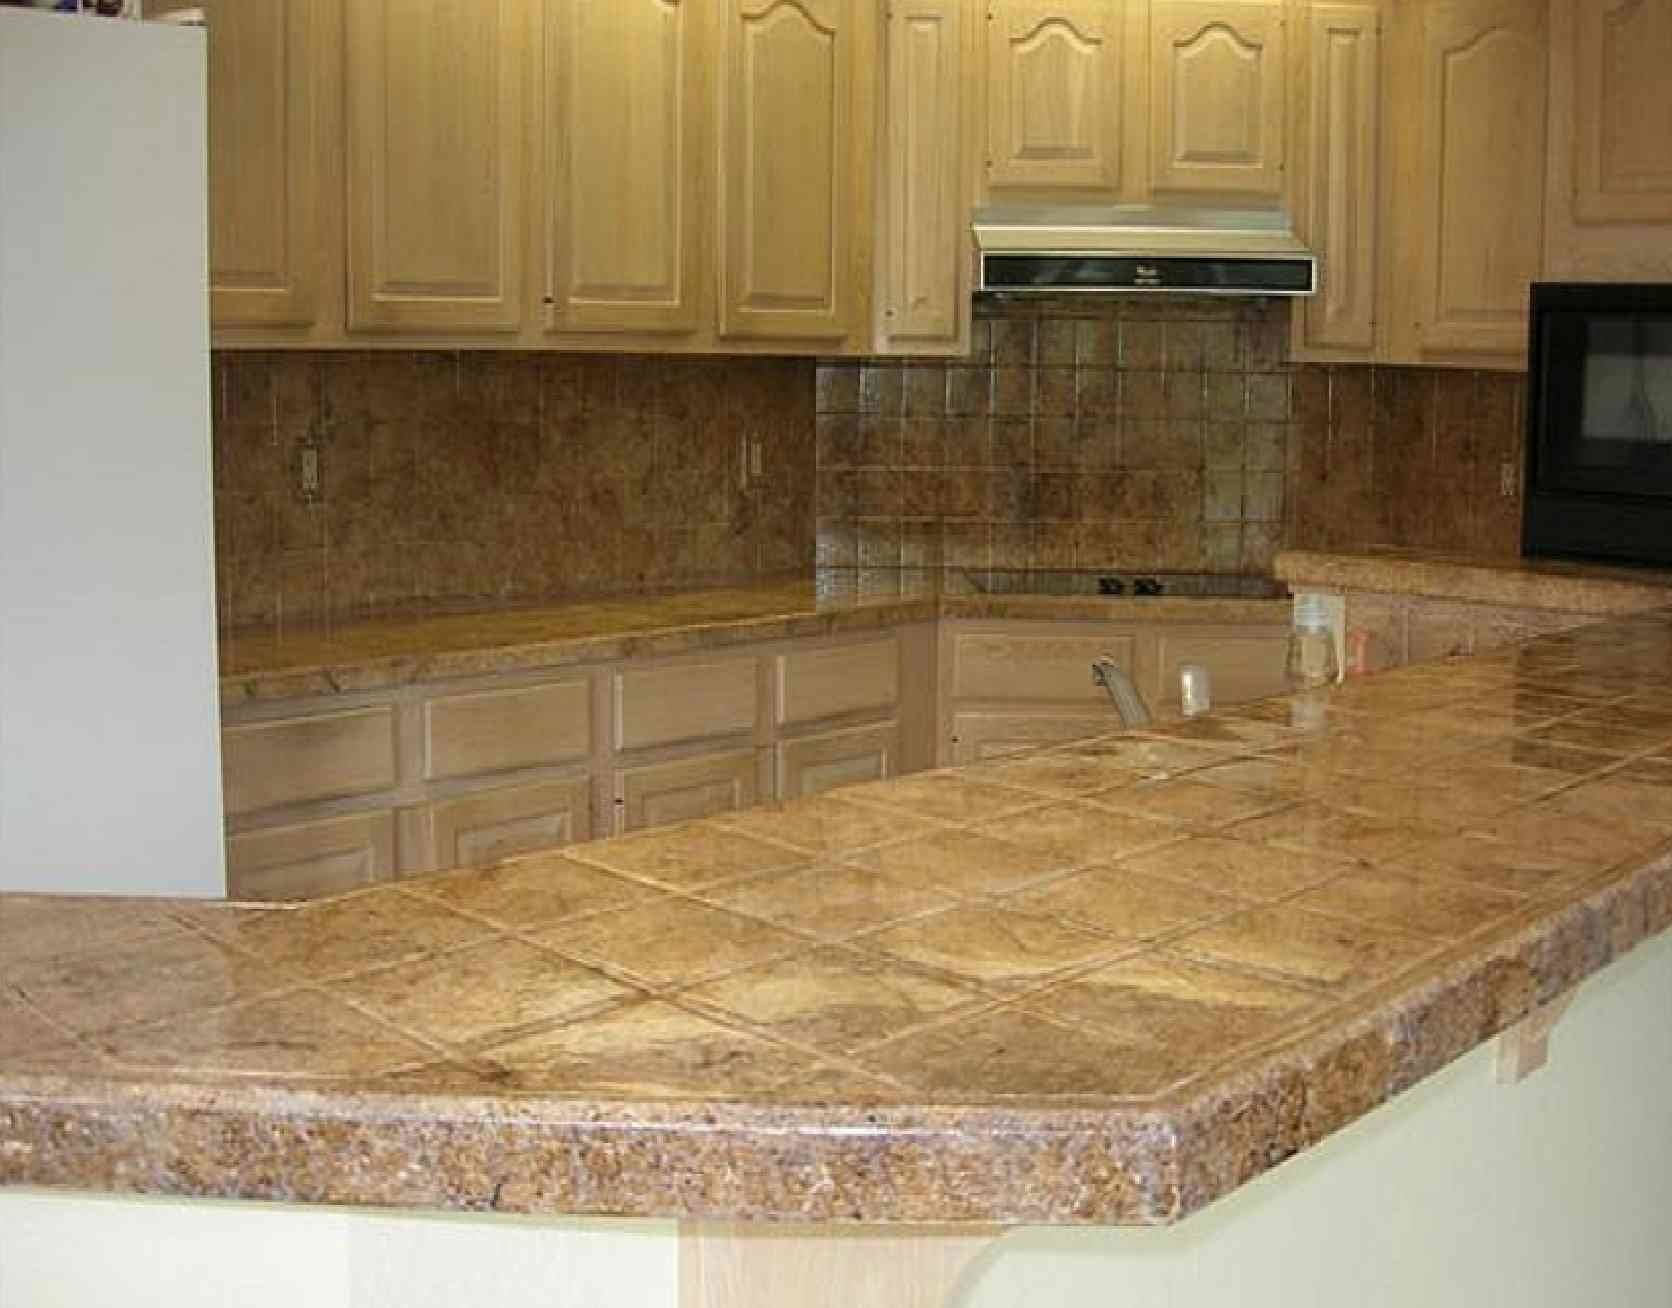 How To Tile Countertop 21 Photo Gallery Gabe Jenny Homes